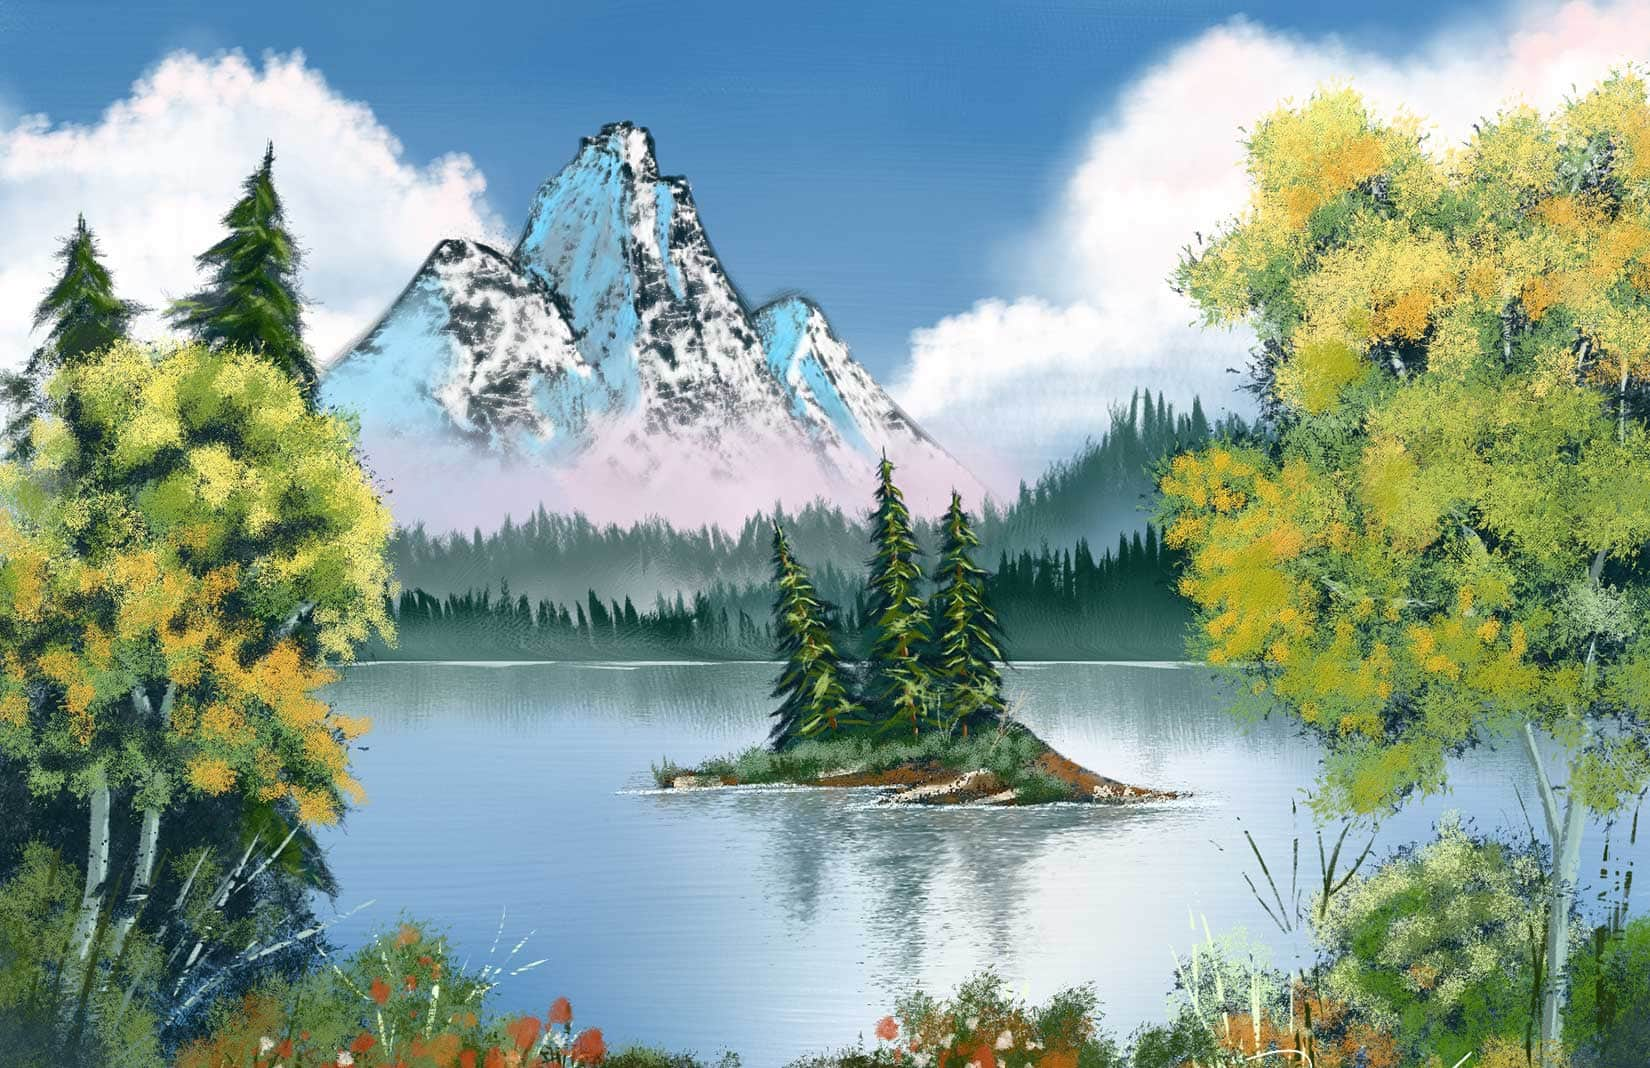 Digital art painting software corel painter 2018 for The art of painting